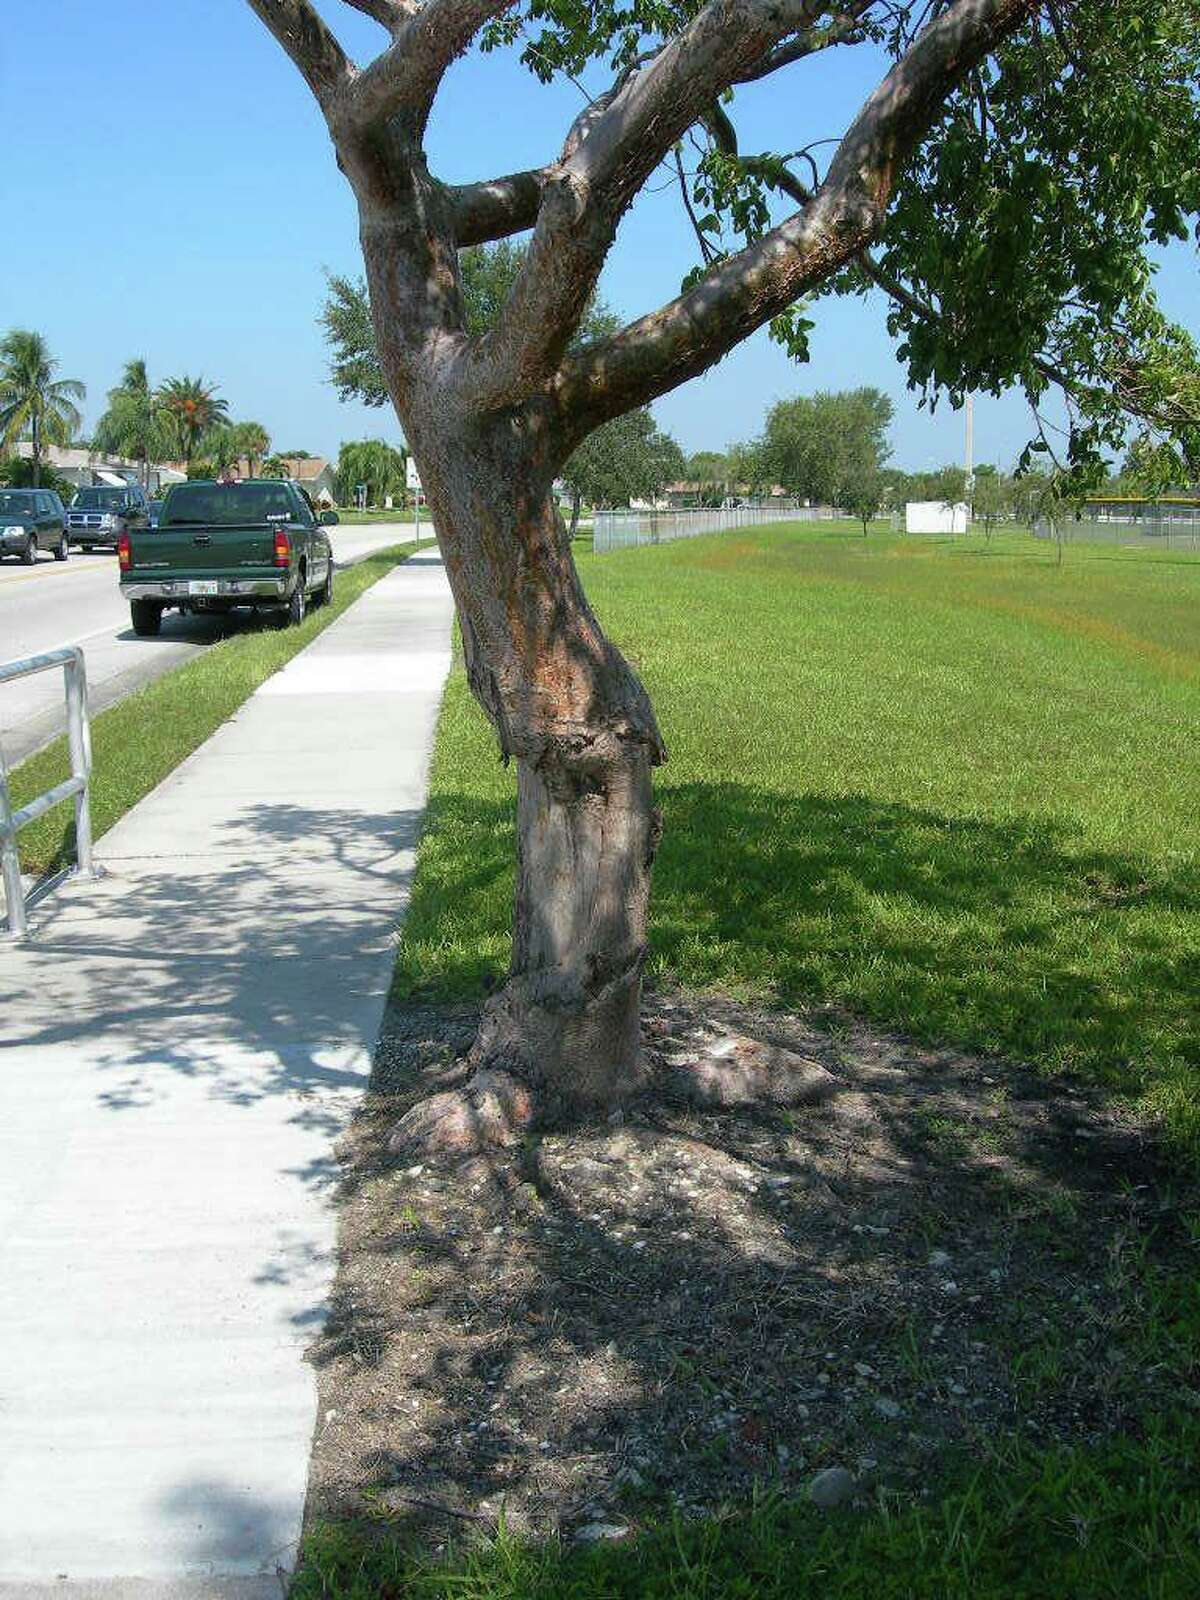 A tree suffering mechanical damage due to landscaping.